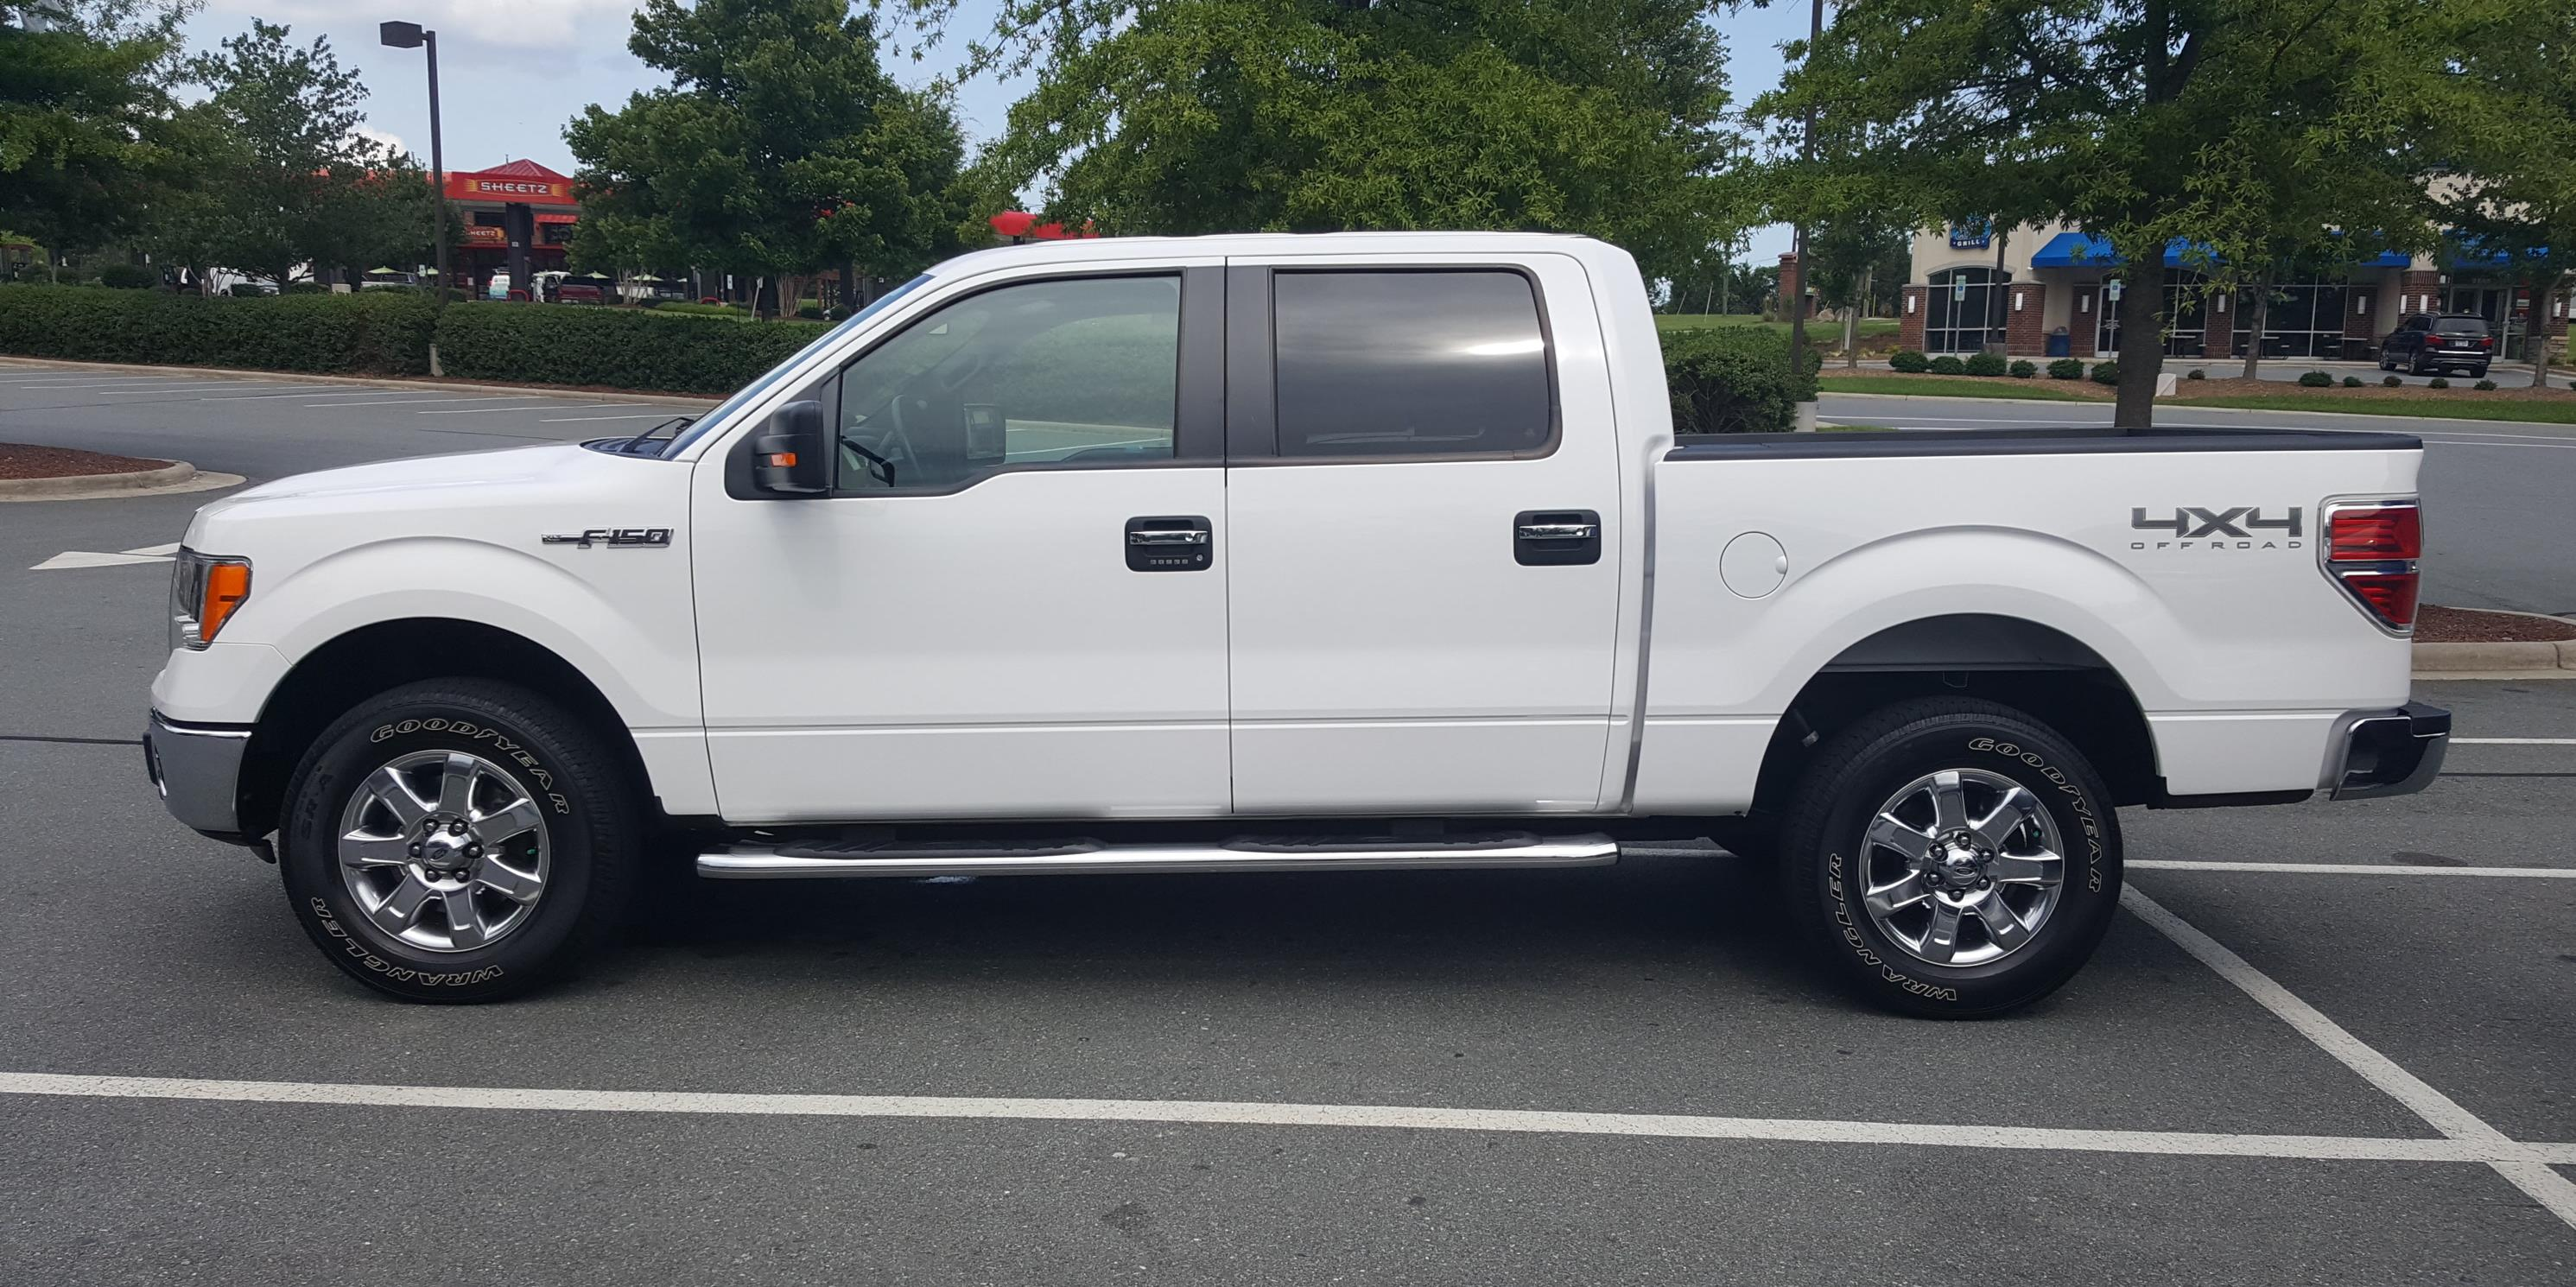 dixie_boysles 2014 Ford F150 SuperCrew Cab